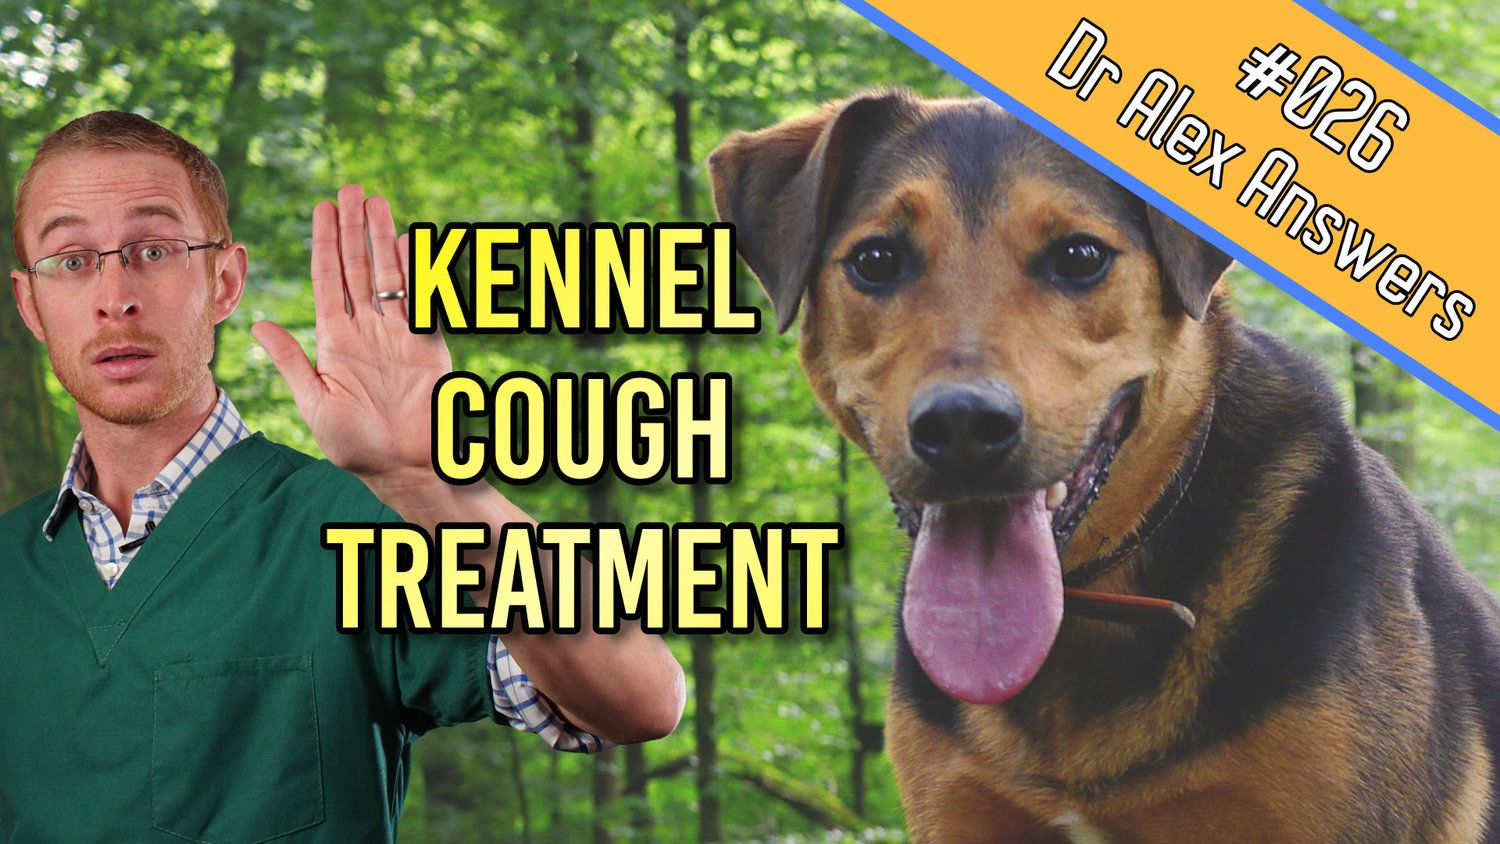 Do You Really Need To Treat Kennel Cough In Dogs Kennel Cough In Dogs Is A Common Infectious Disease But Are Antibi Kennel Cough Treatment Dog Coughing Cough